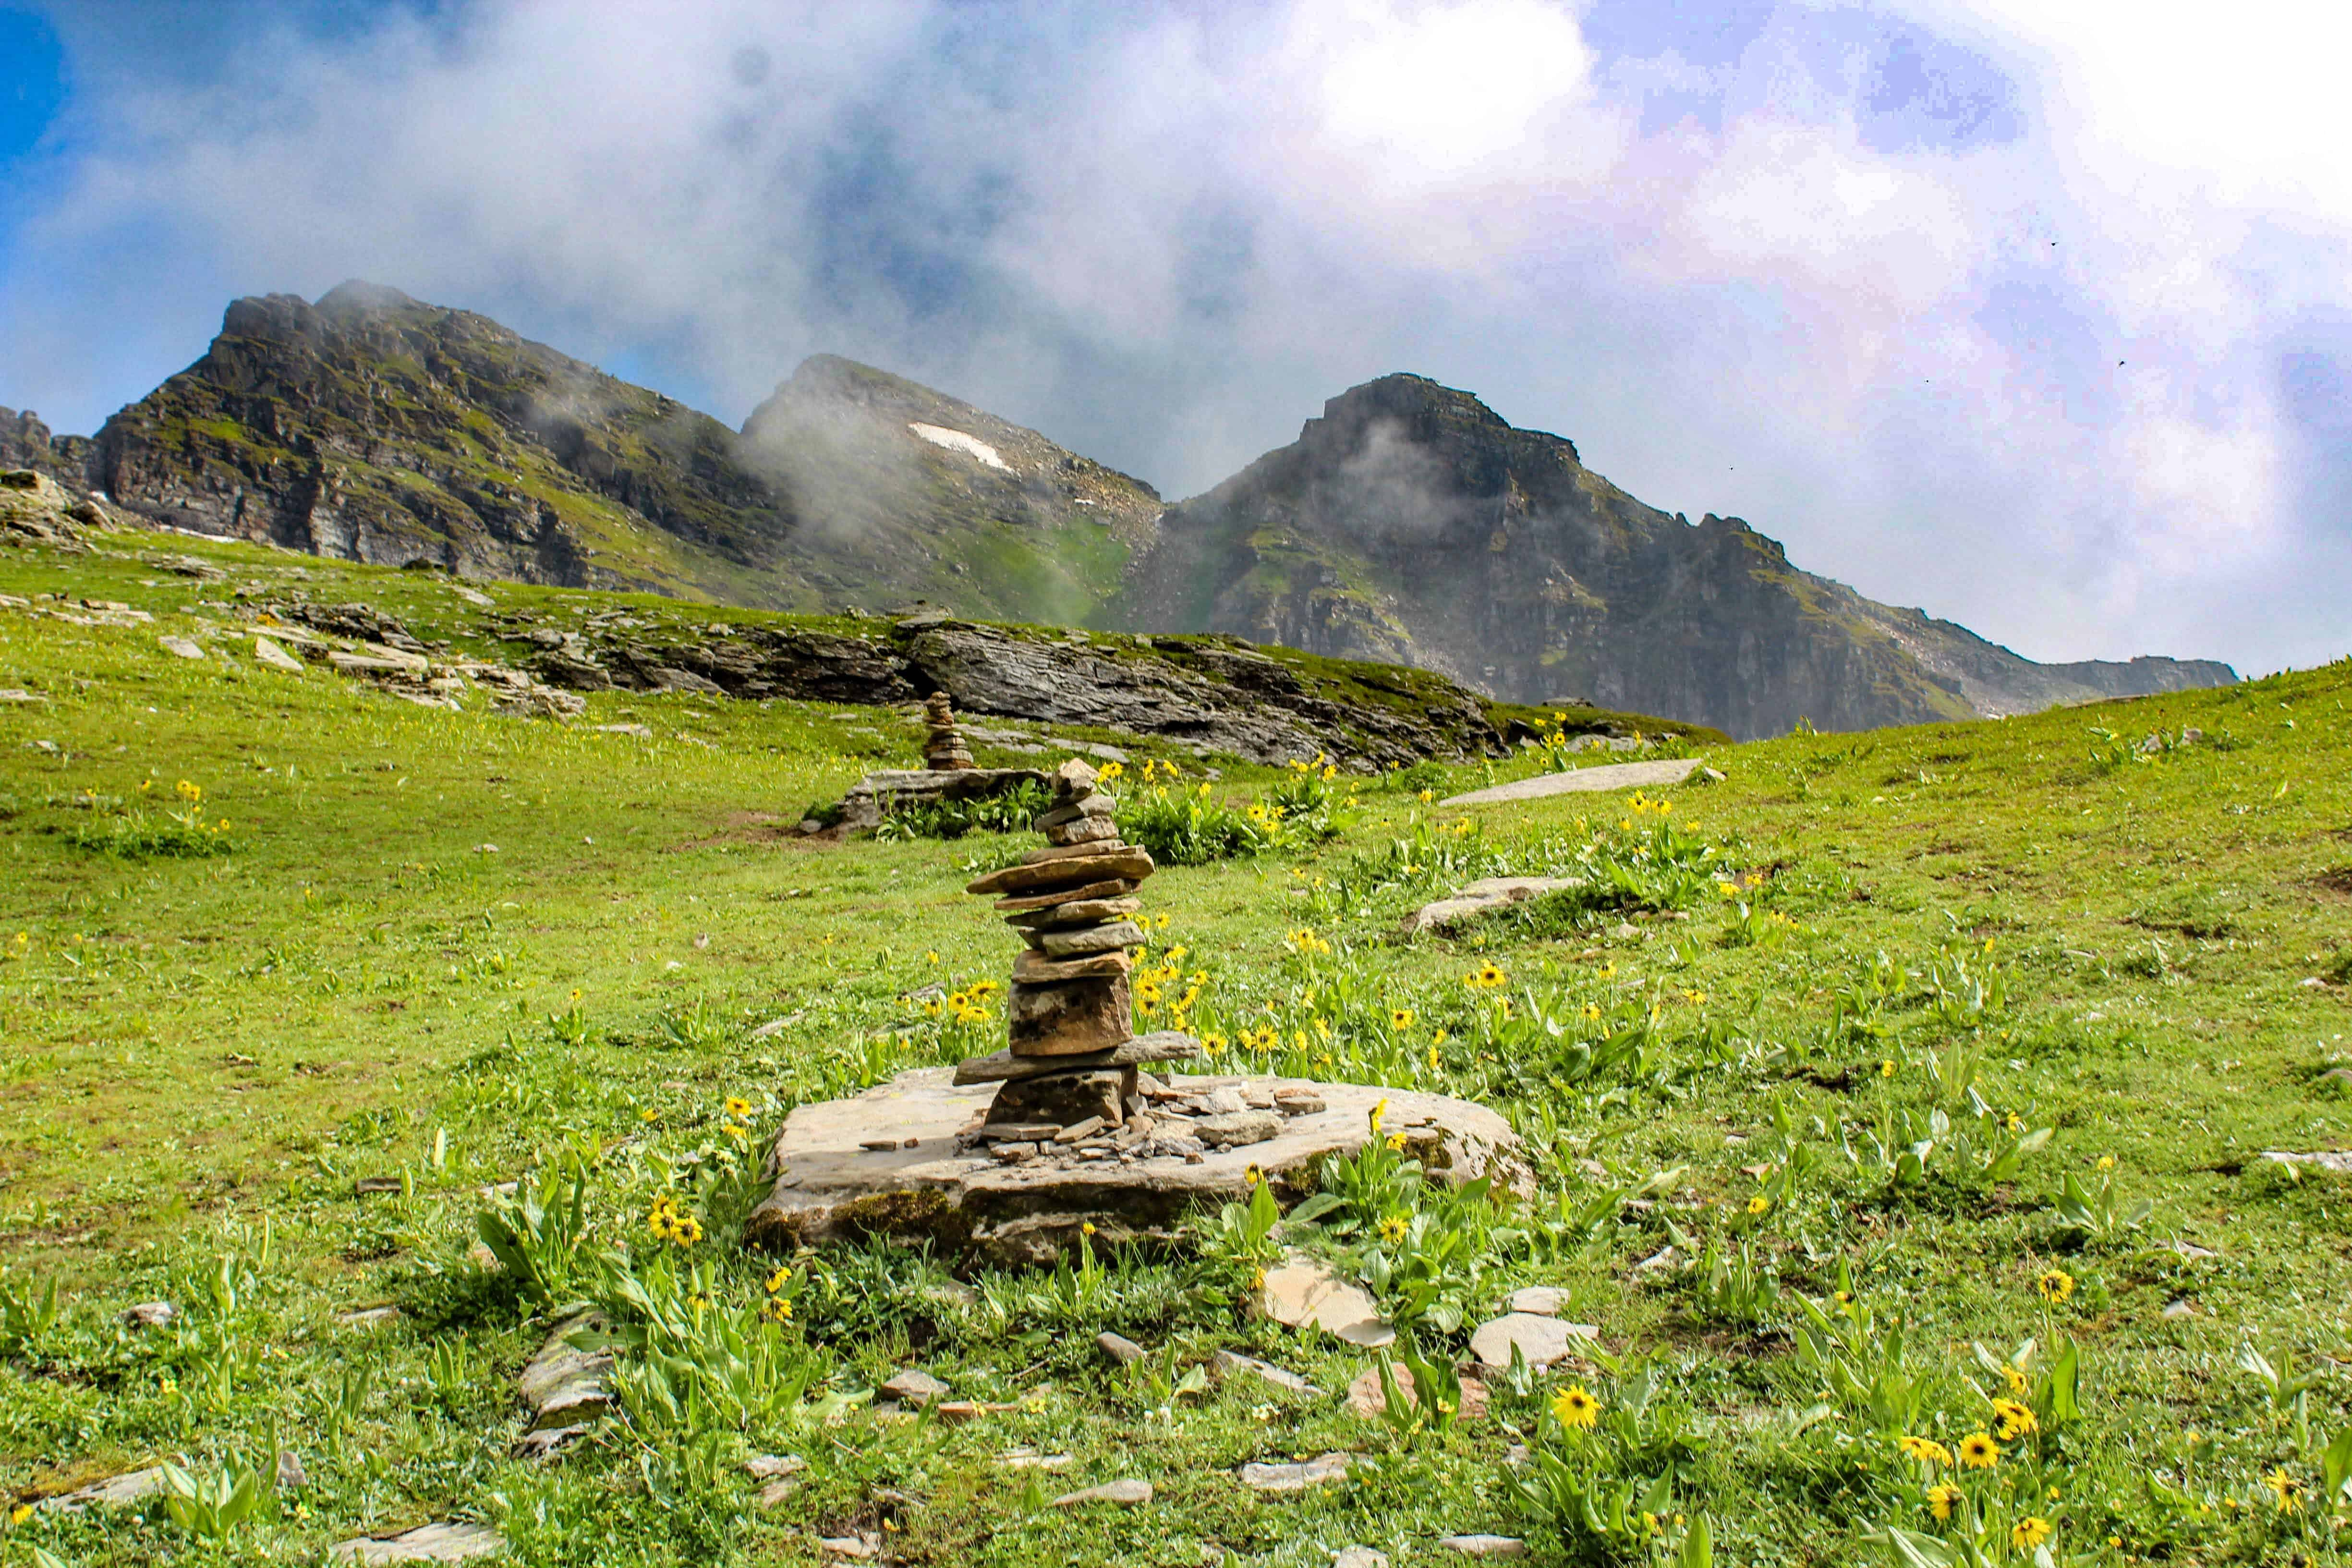 Cairns along the trail to Bhrigu Lake